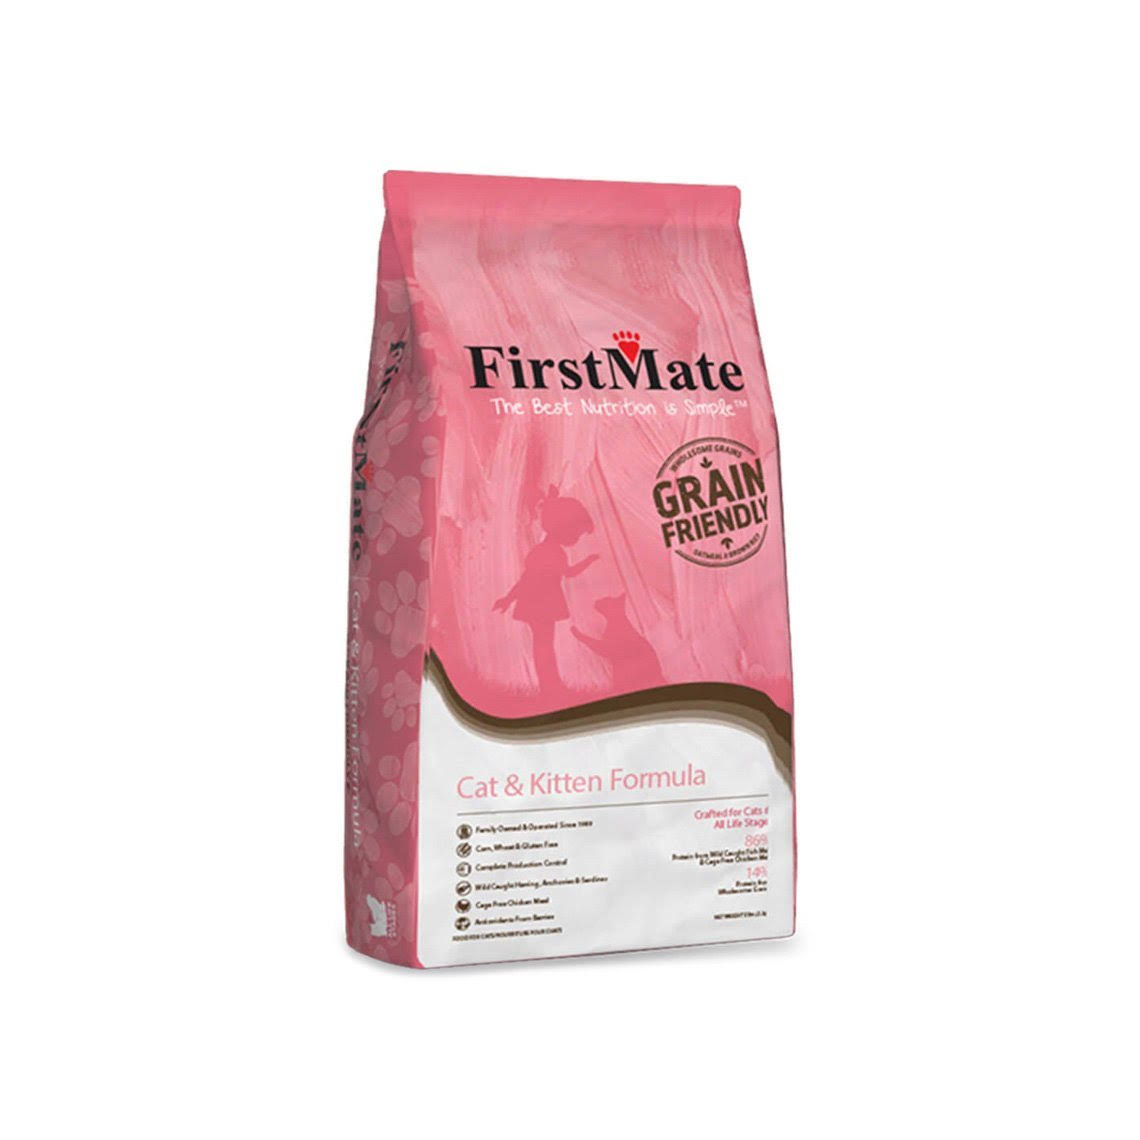 FirstMate Grain Friendly Cat & Kitten 13.2 lb Bag Cat Food